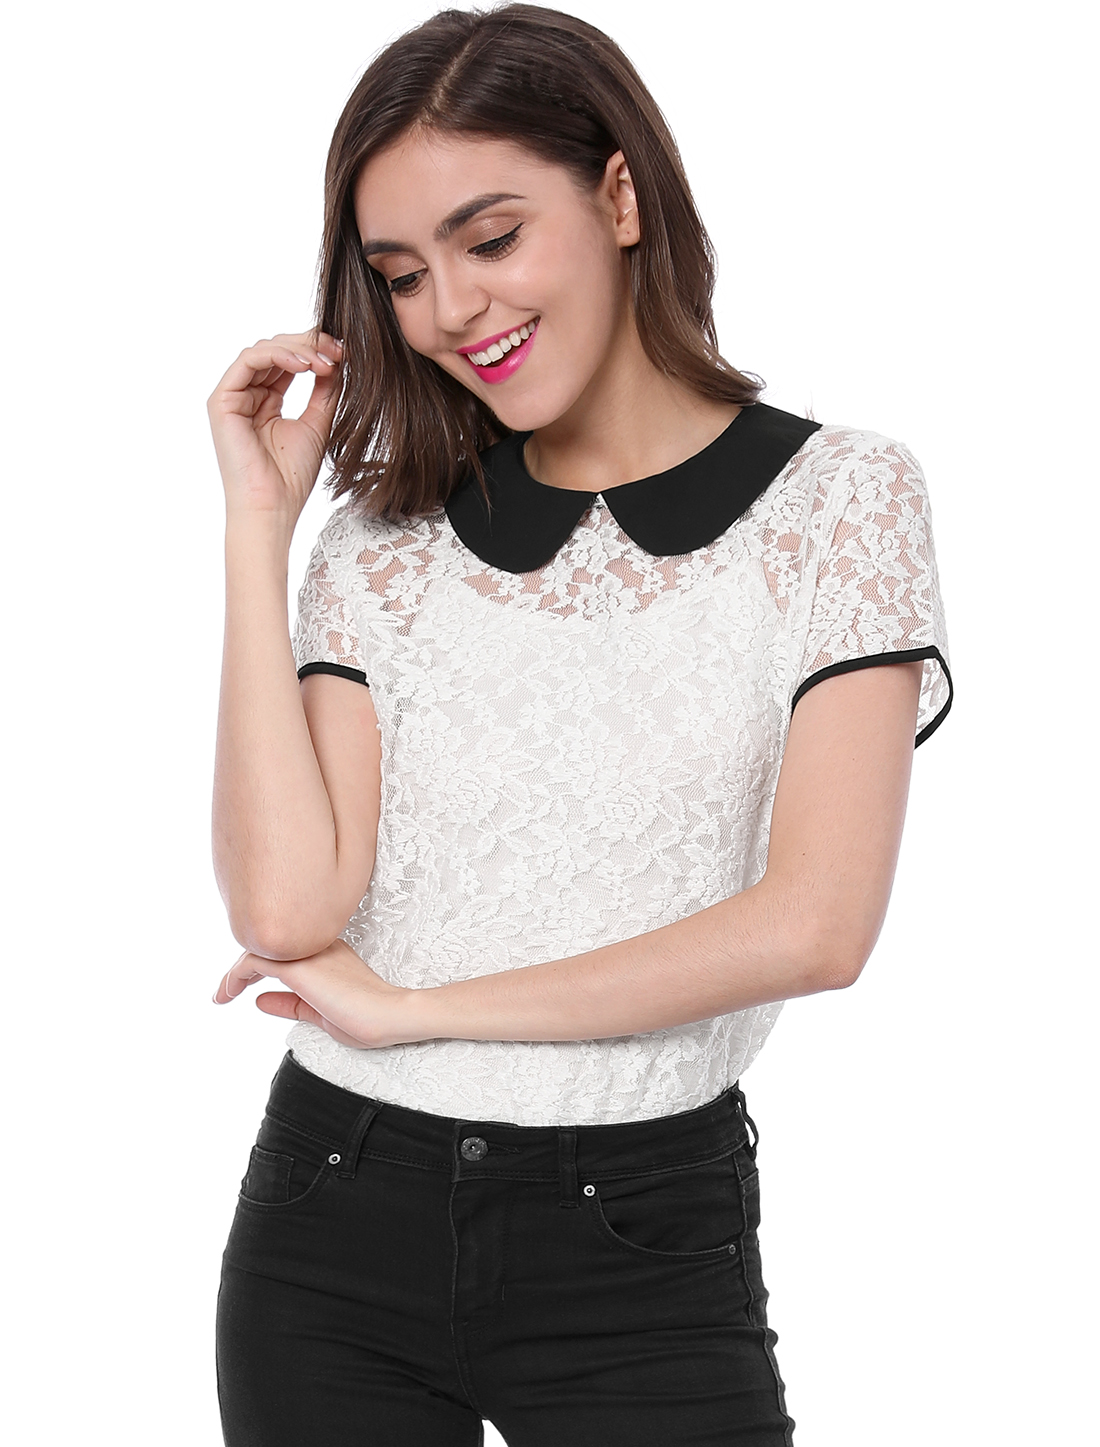 Women See Through Contrast Peter Pan Collar Lace Top White XL